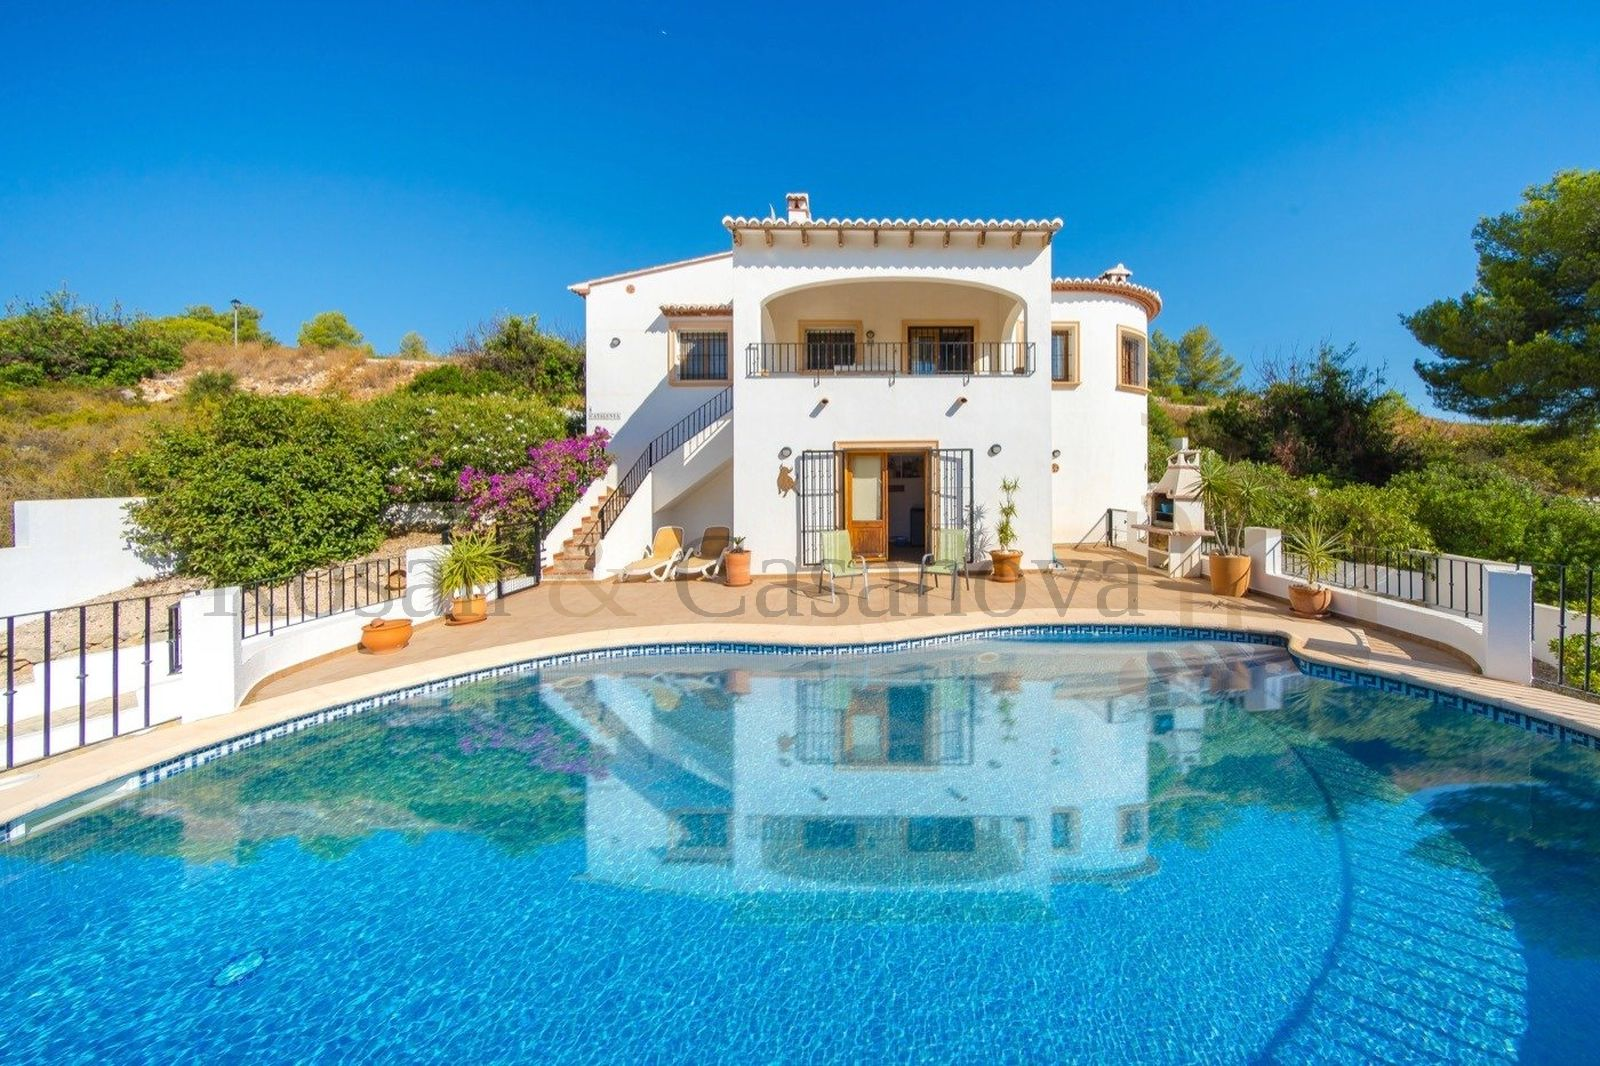 Pedreguer - Villa with fantastic panoramic views in Pedreguer